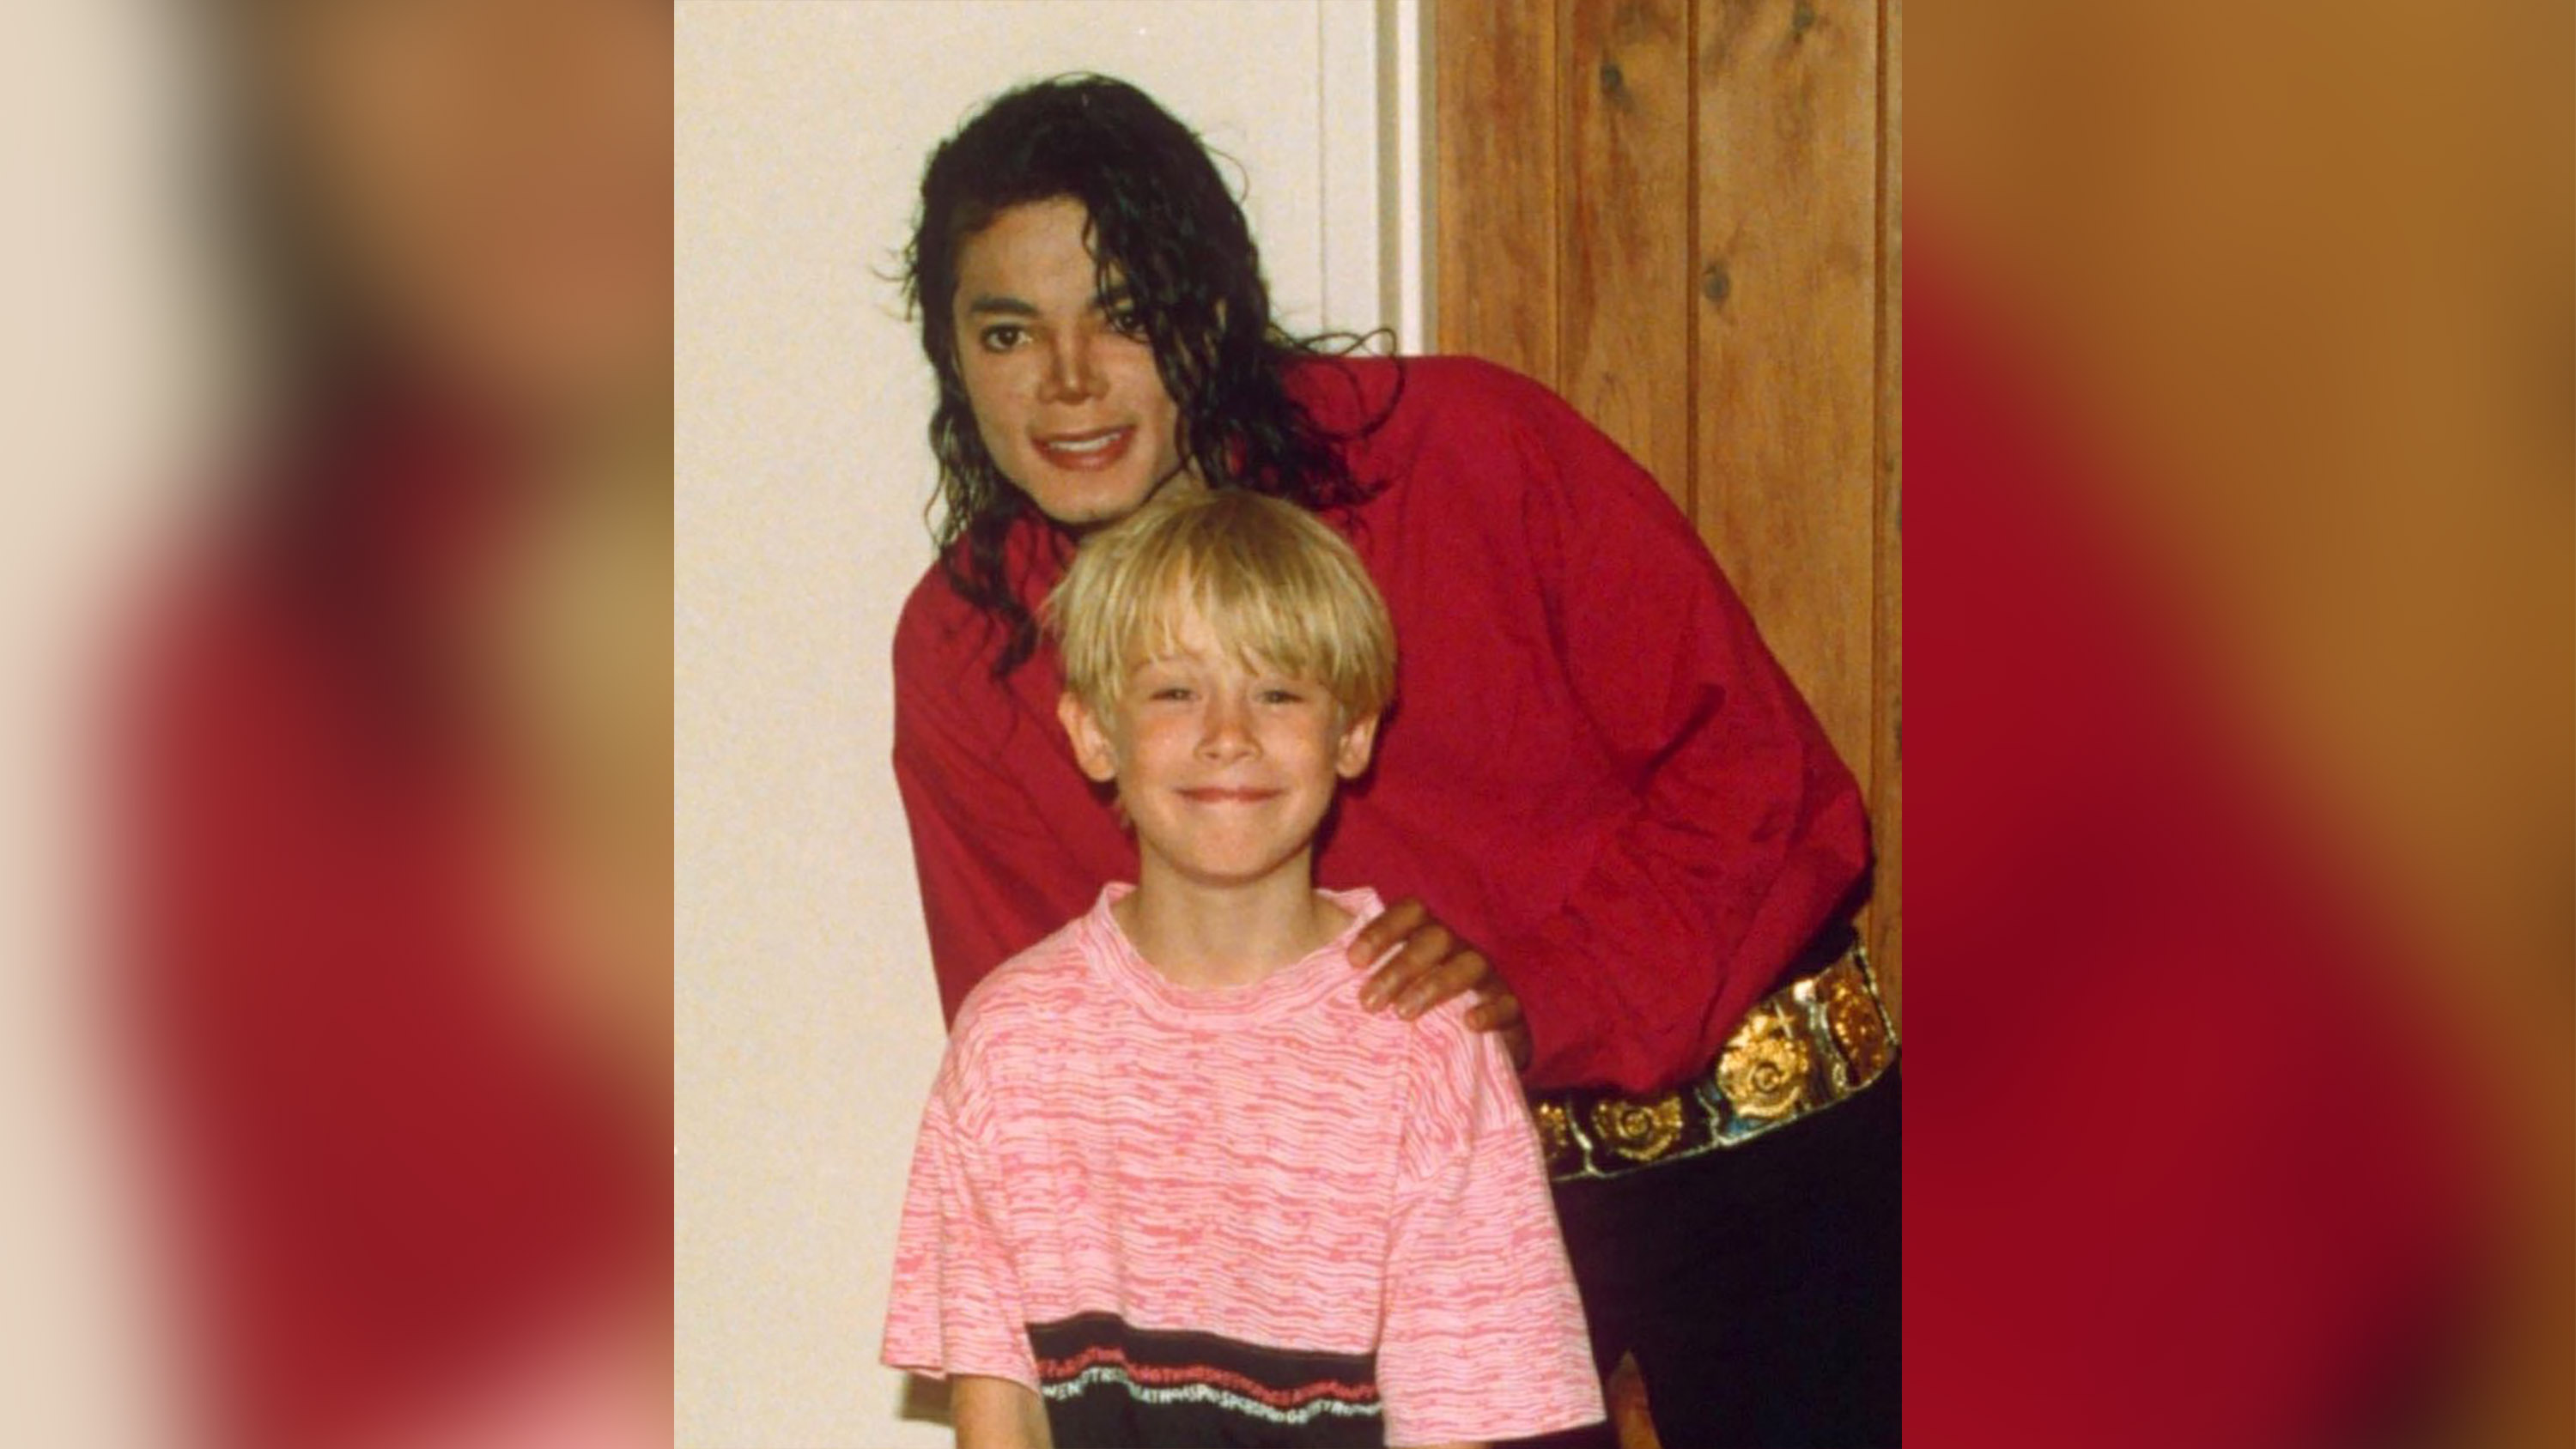 Maman, j'ai raté l'avion ! 190116132542-02-macaulay-culkin-michael-jackson-file-restricted-use